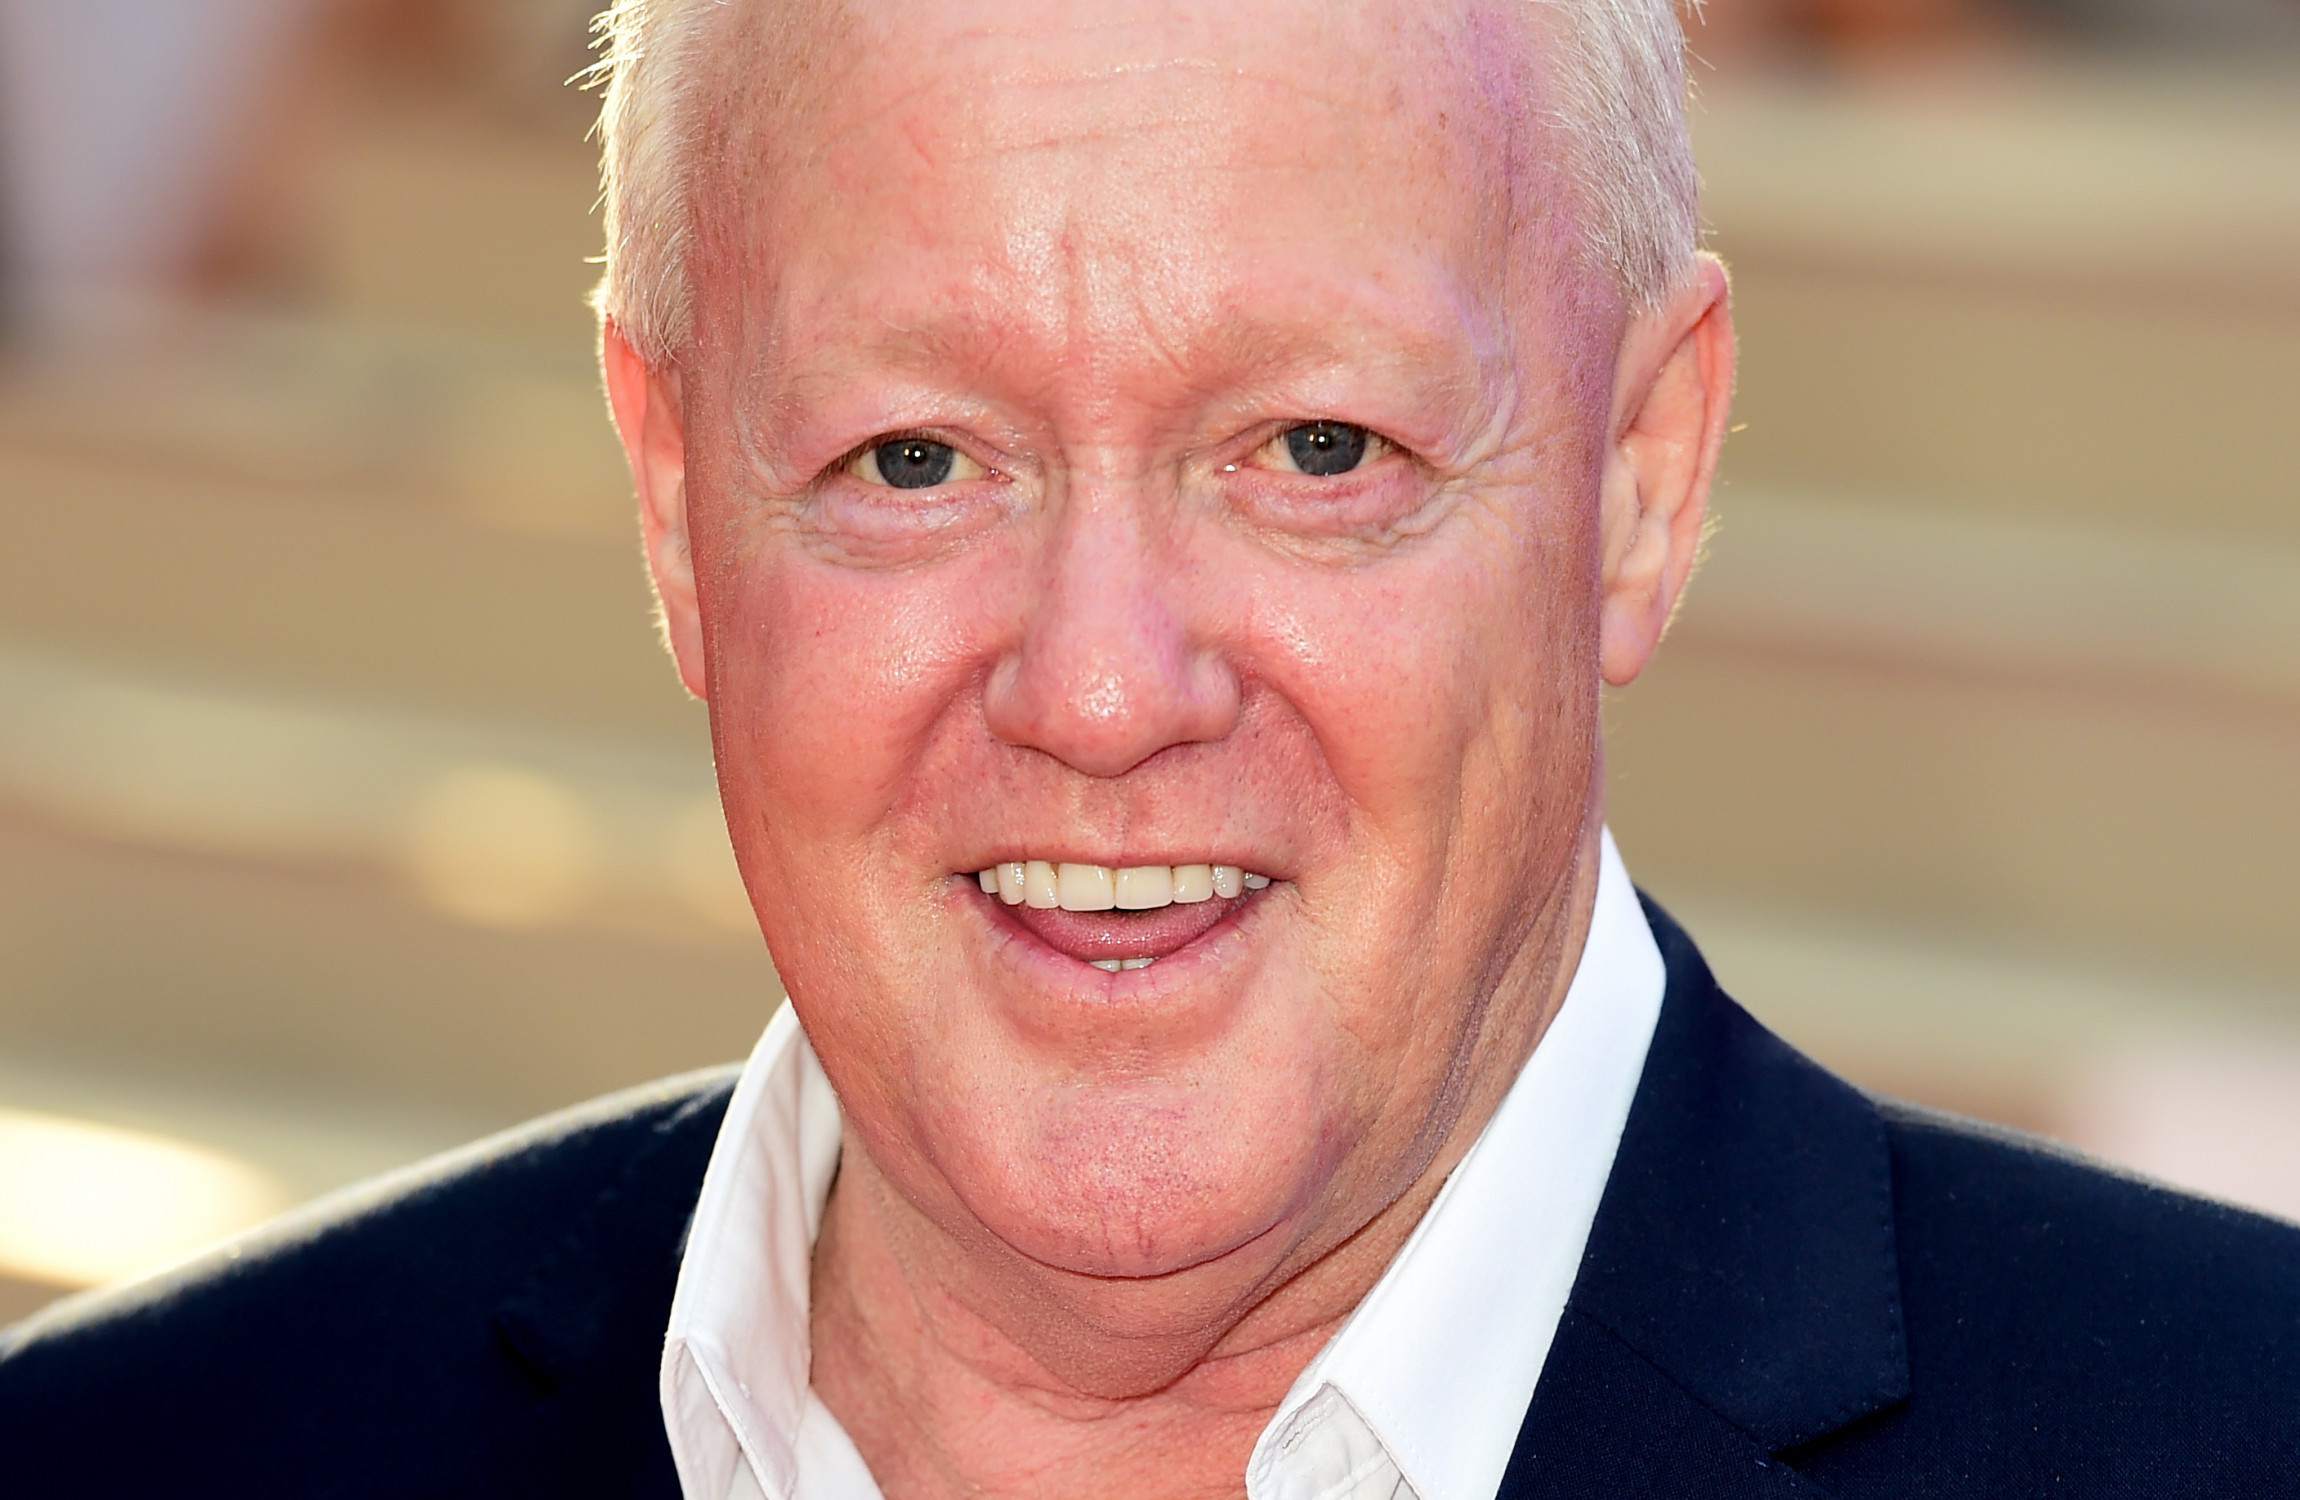 TV presenter Keith Chegwin has died, aged 60